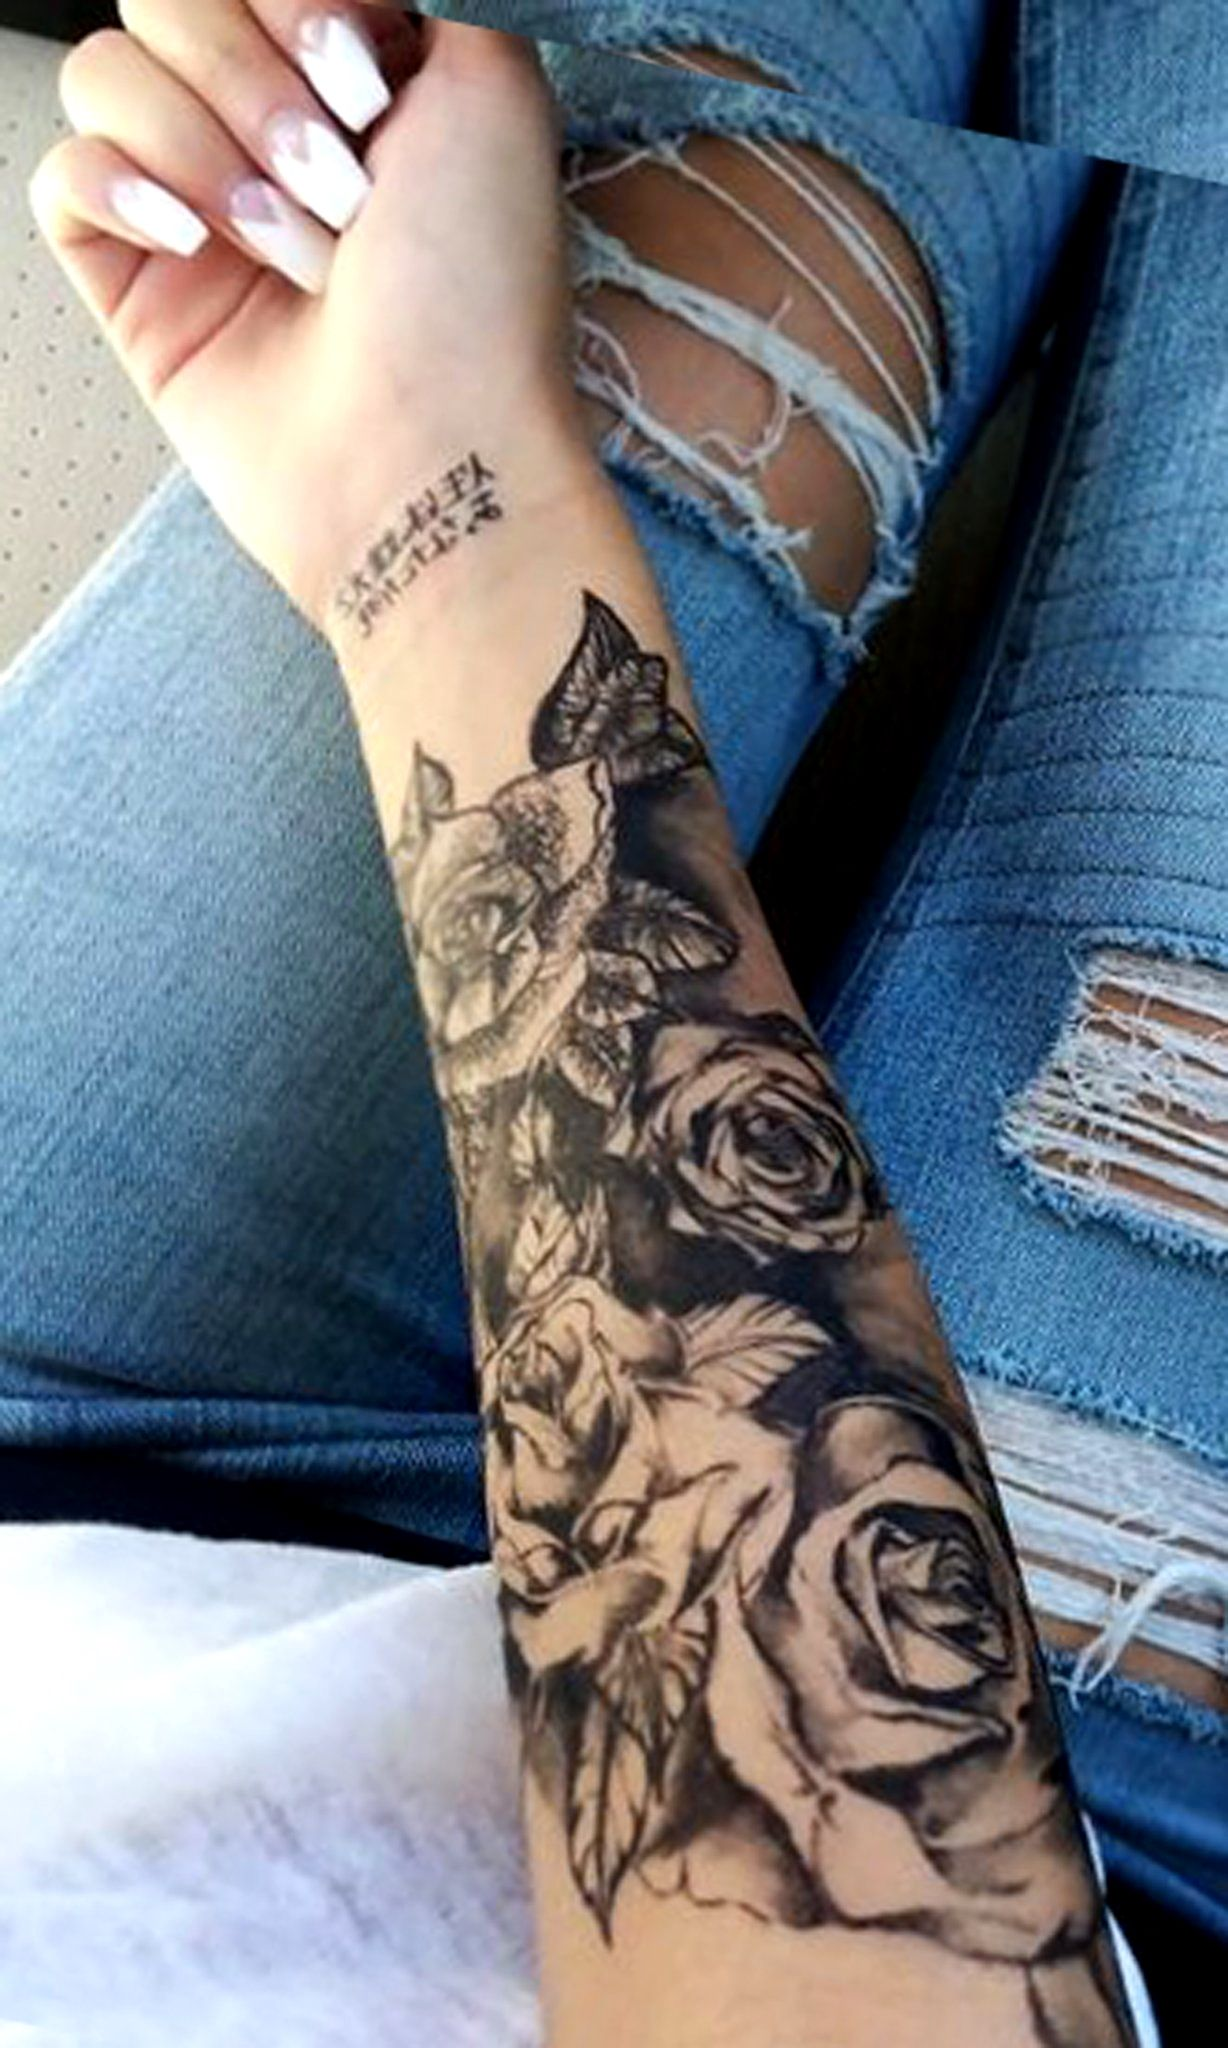 Dot Work Rose Flower Stick Tattoo On Arm Rose On Arm Tattoo Check